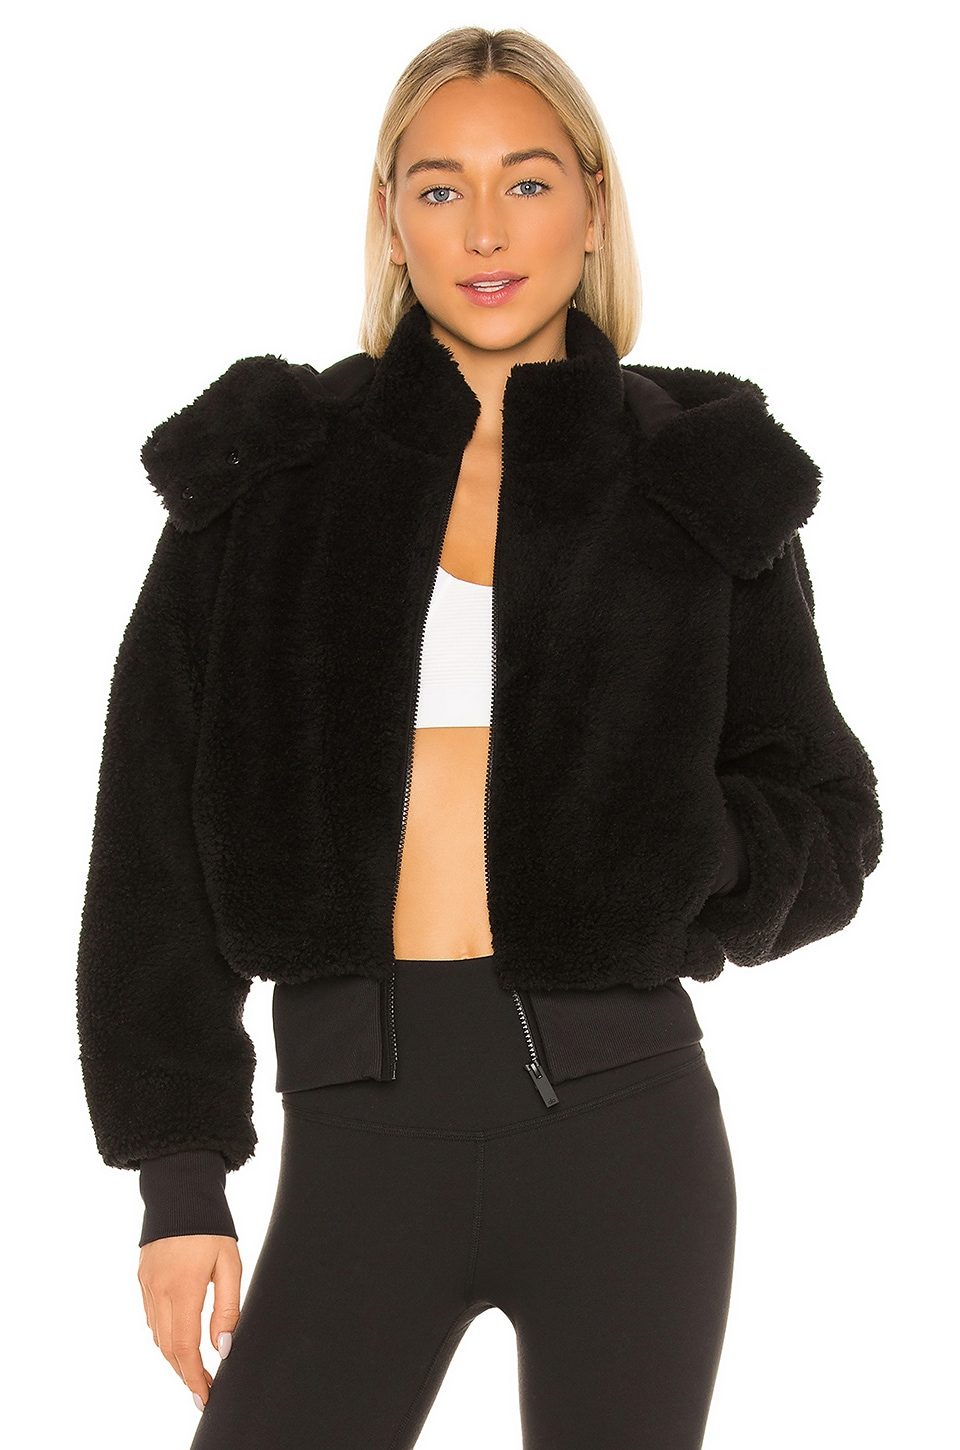 alo Foxy Sherpa Jacket in Black